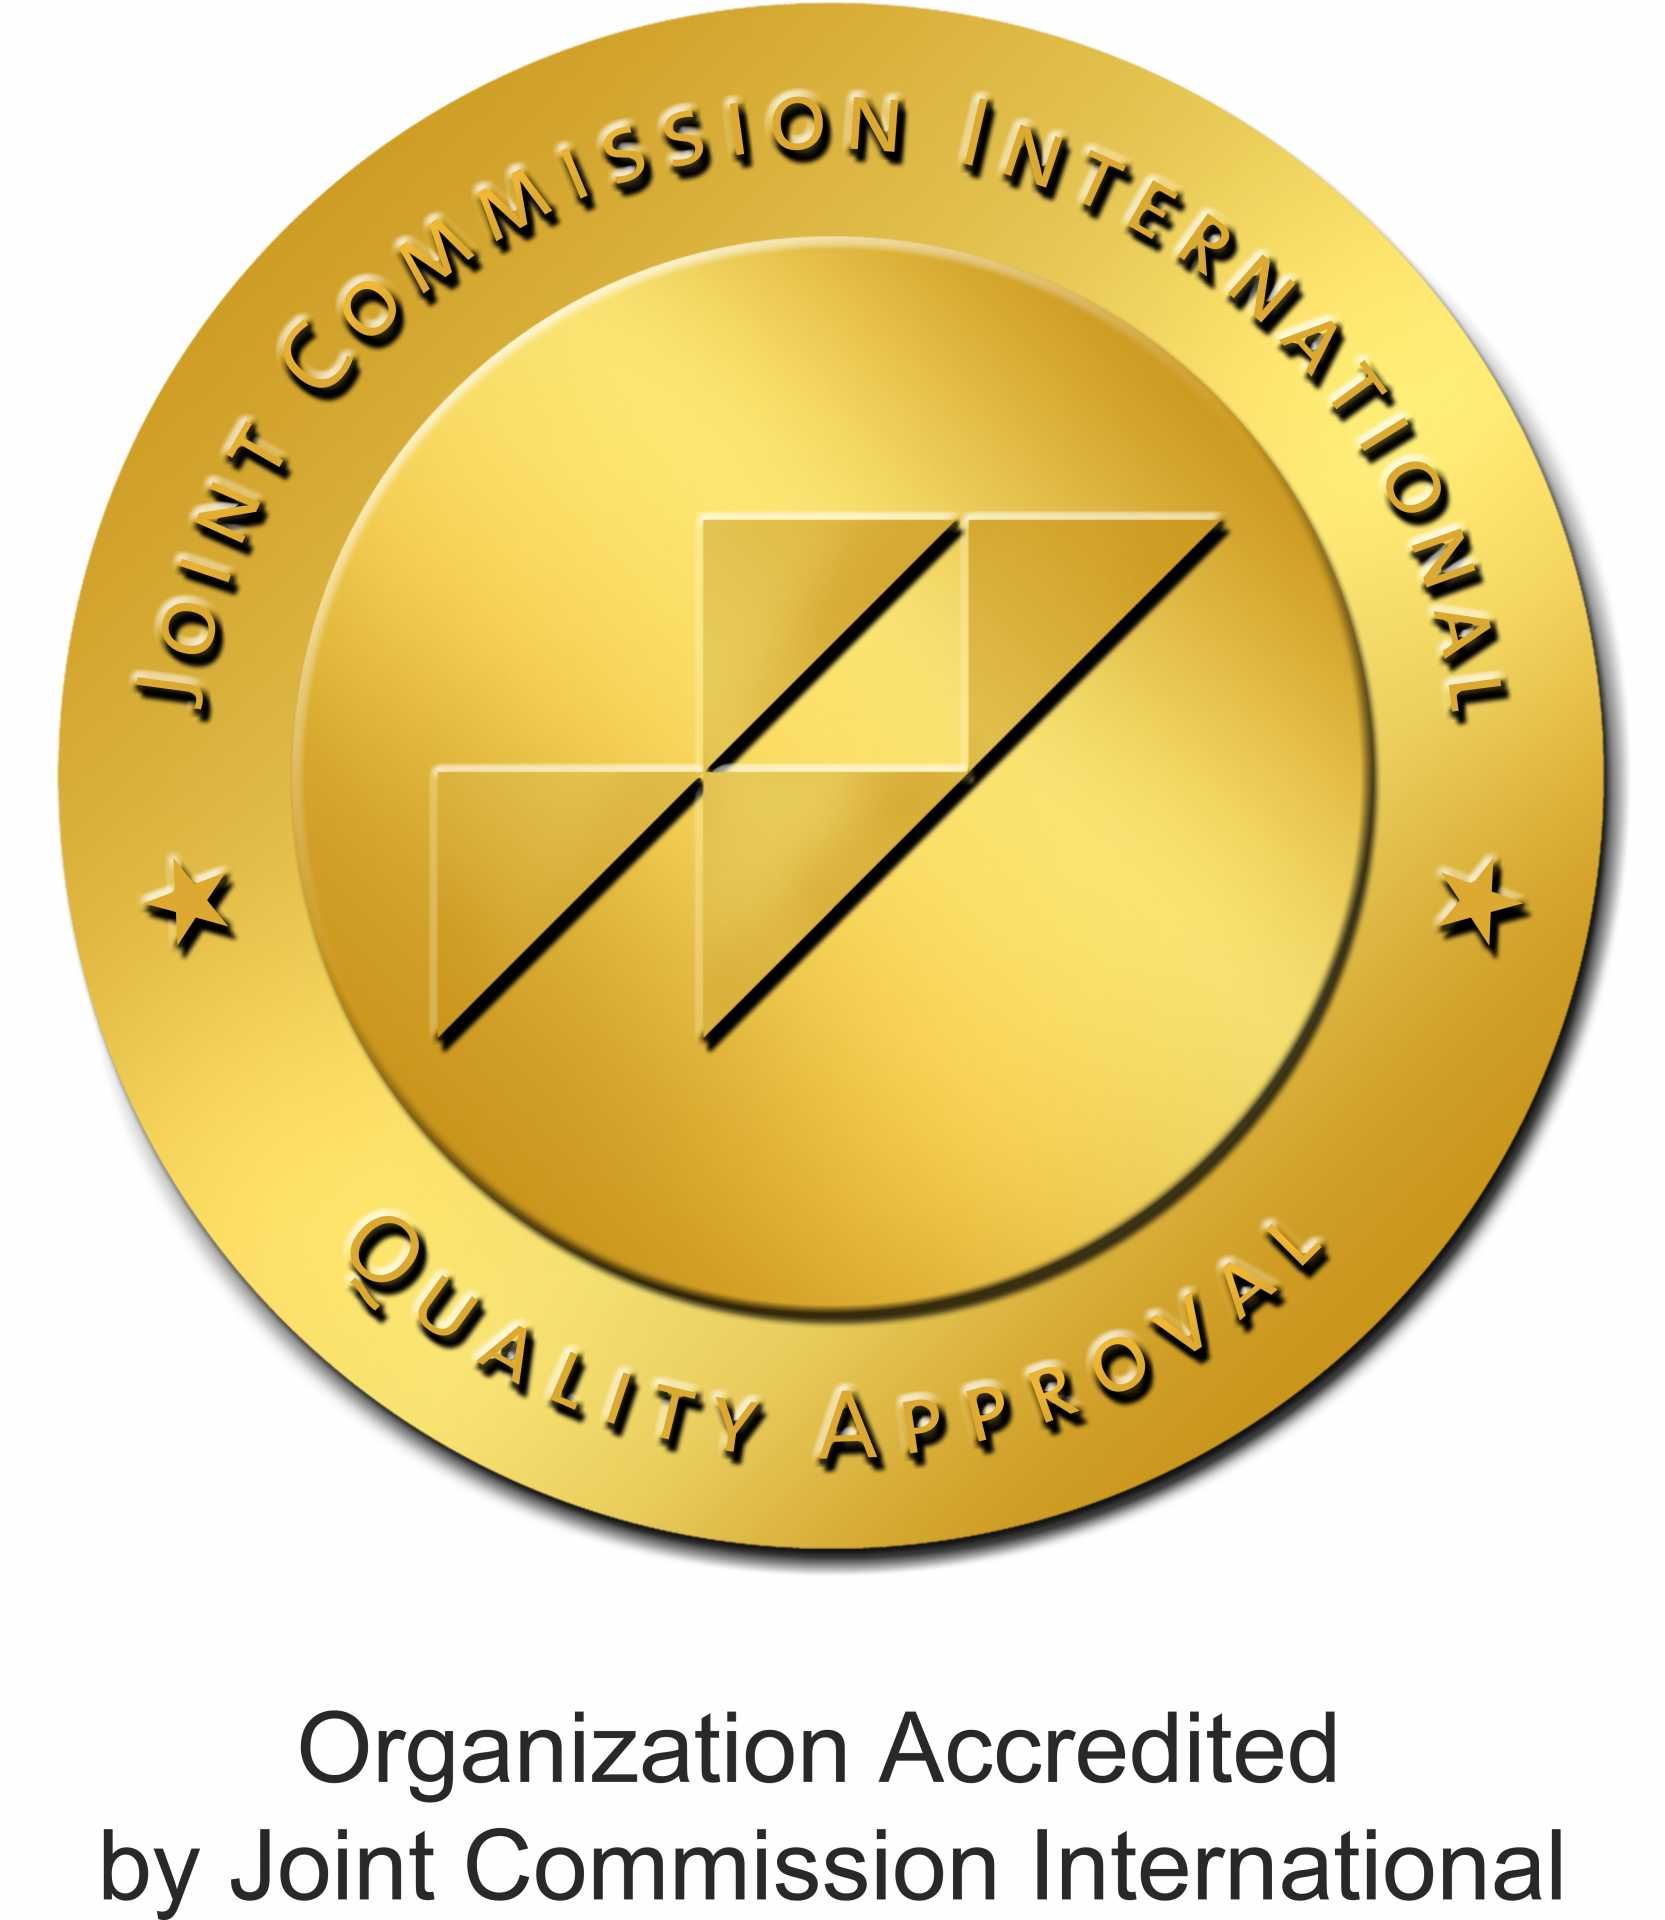 Organization Accredited by Joint Commission International